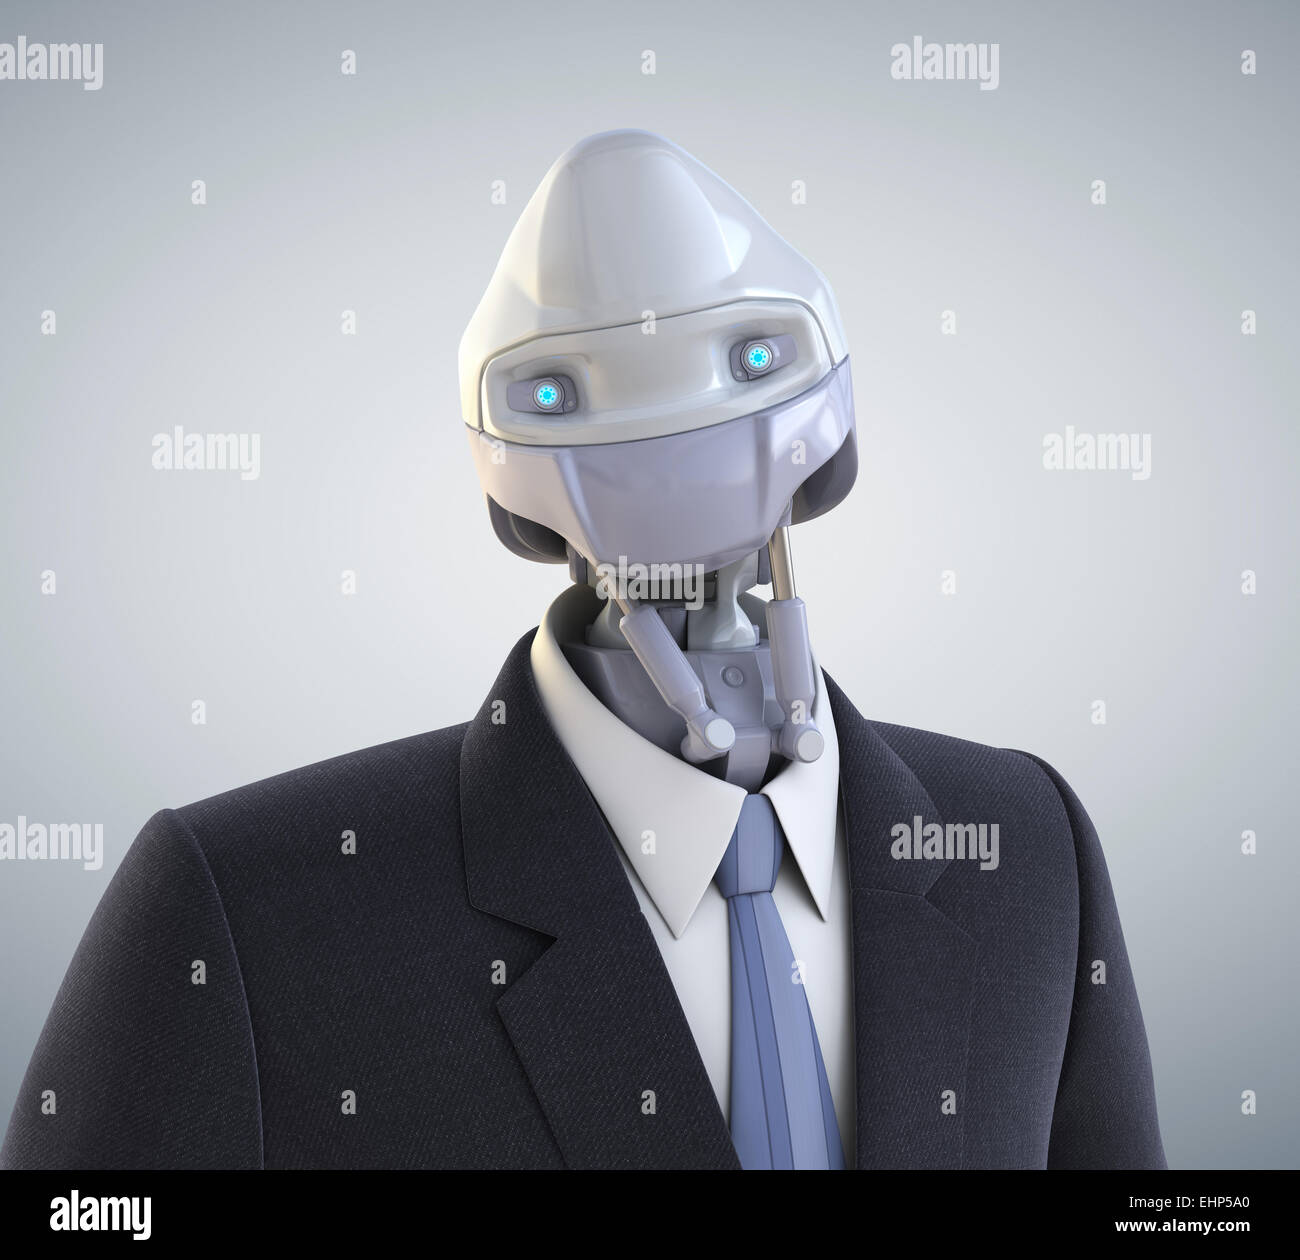 Robot vestito con una tuta di business. Percorso di clipping incluso Immagini Stock